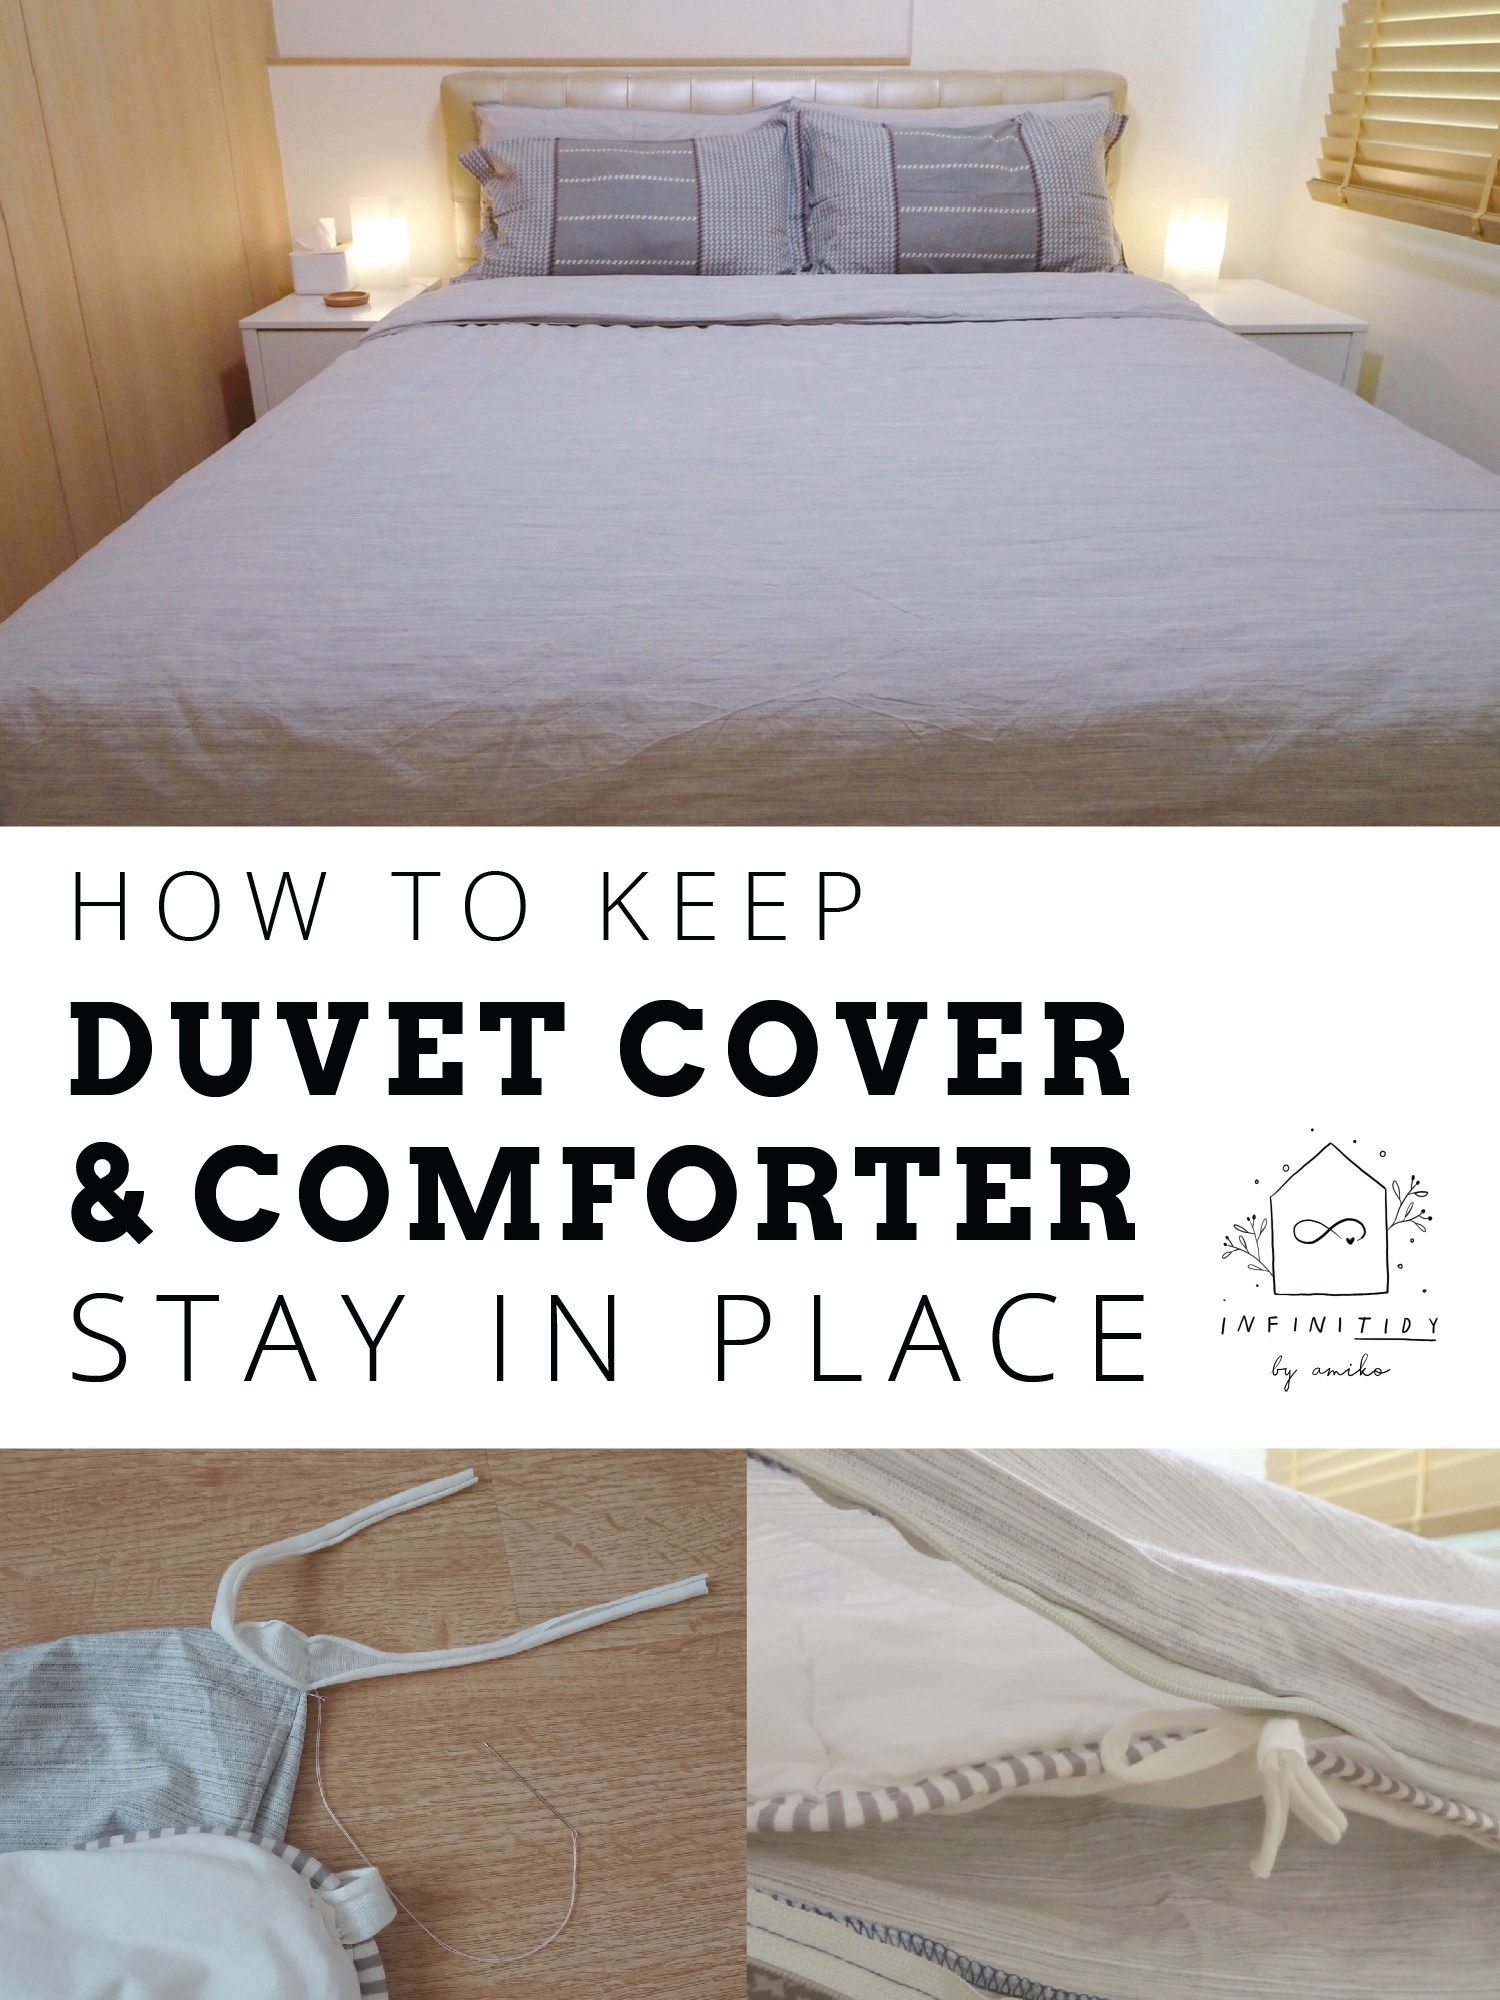 Duvet Covers And Comforters How To Keep Duvet Cover Comforter Stay In Place Homemaking Tips